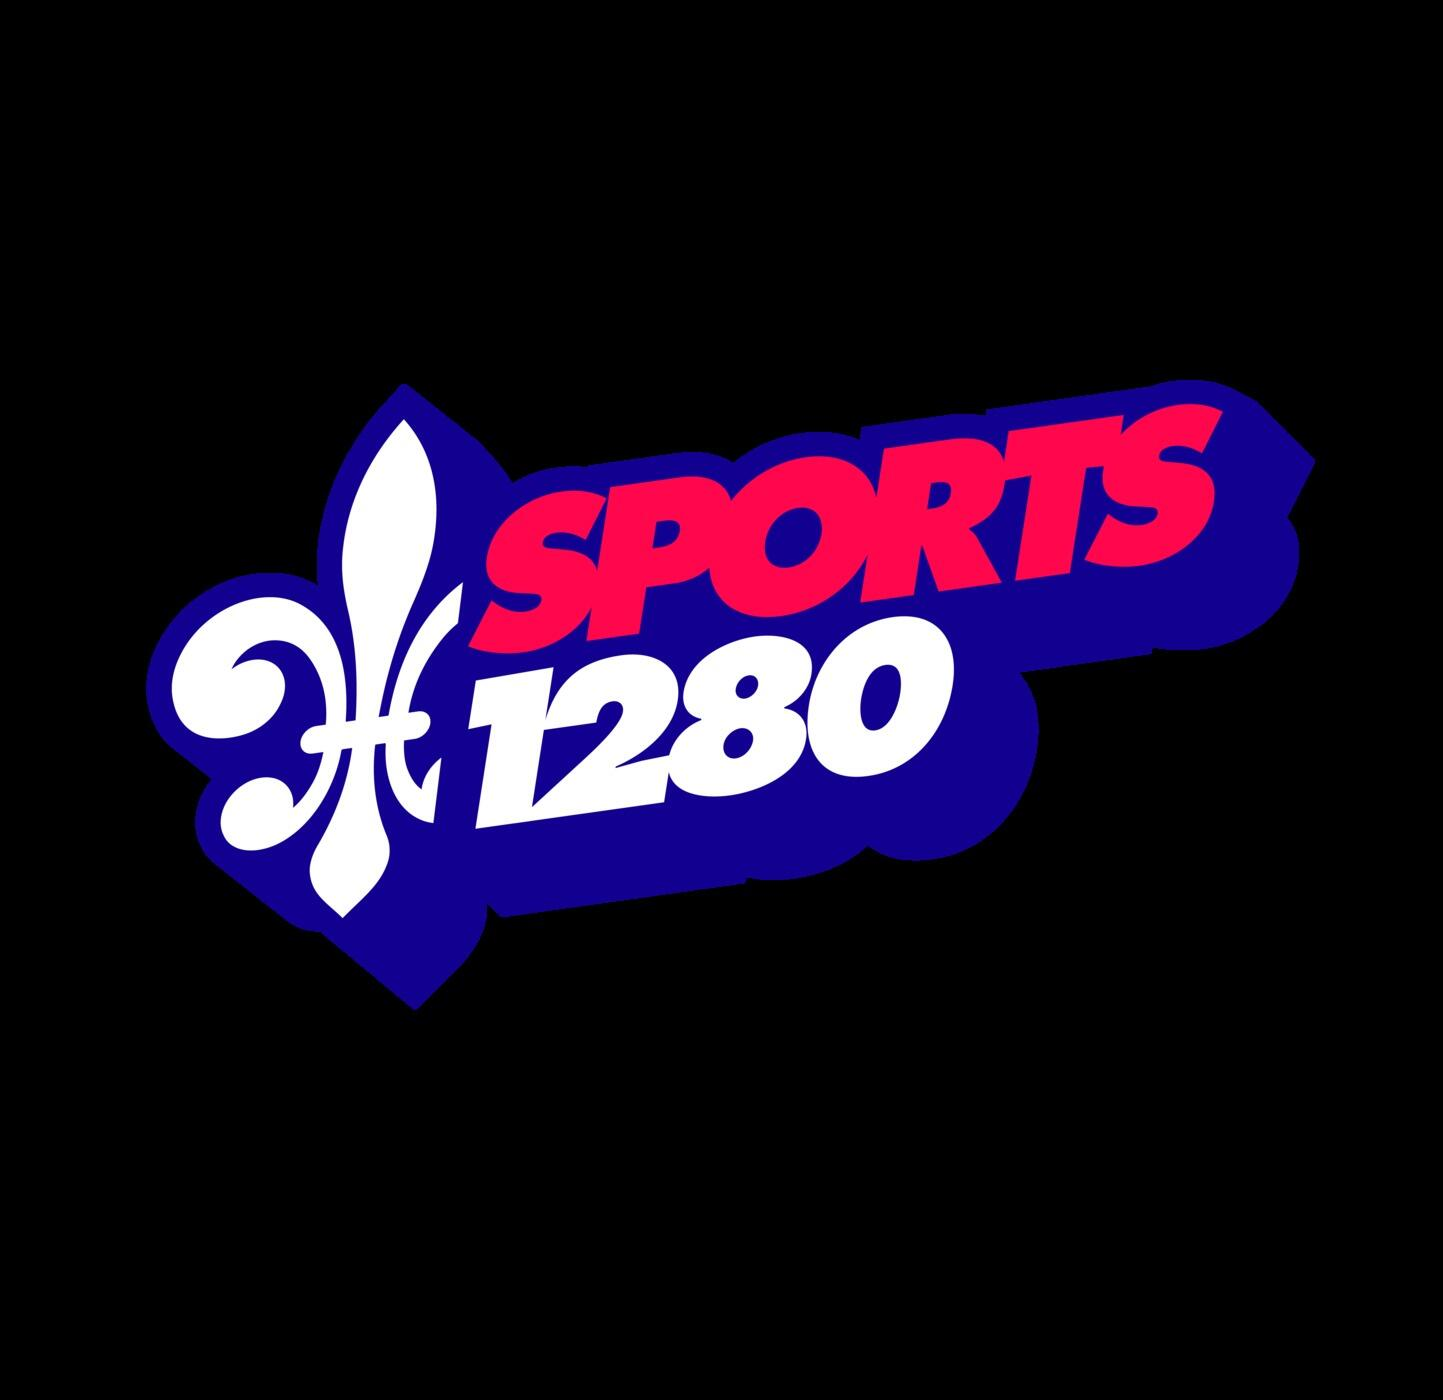 Listen to Pelicans Rockets Weekend Matchup Preview & NOLA Gold Rugby on a Roll on the Westbank | Inside New Orleans With Eric Asher | Podcasts